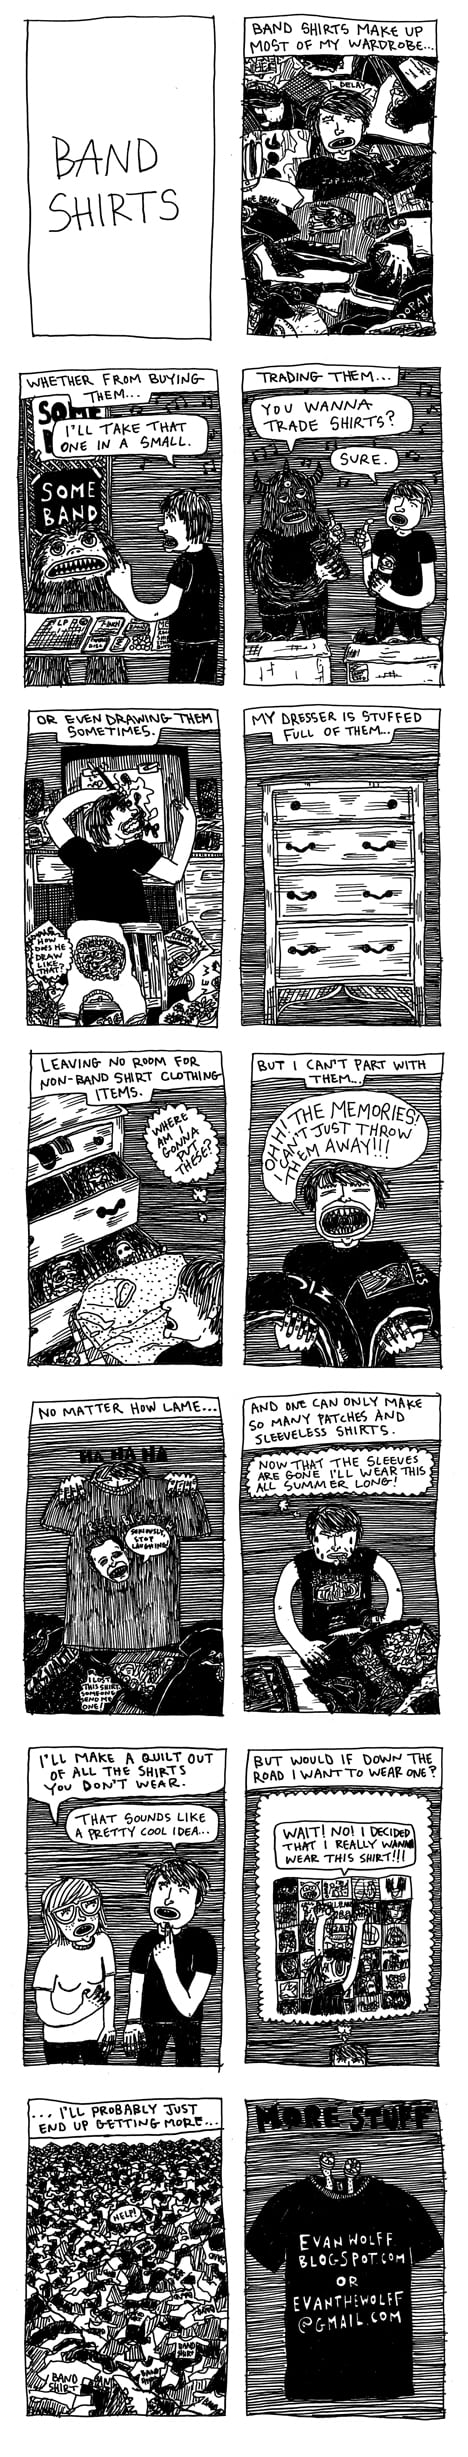 Webcomic Wednesdays #29: Where We All Have Too Many Band Shirts